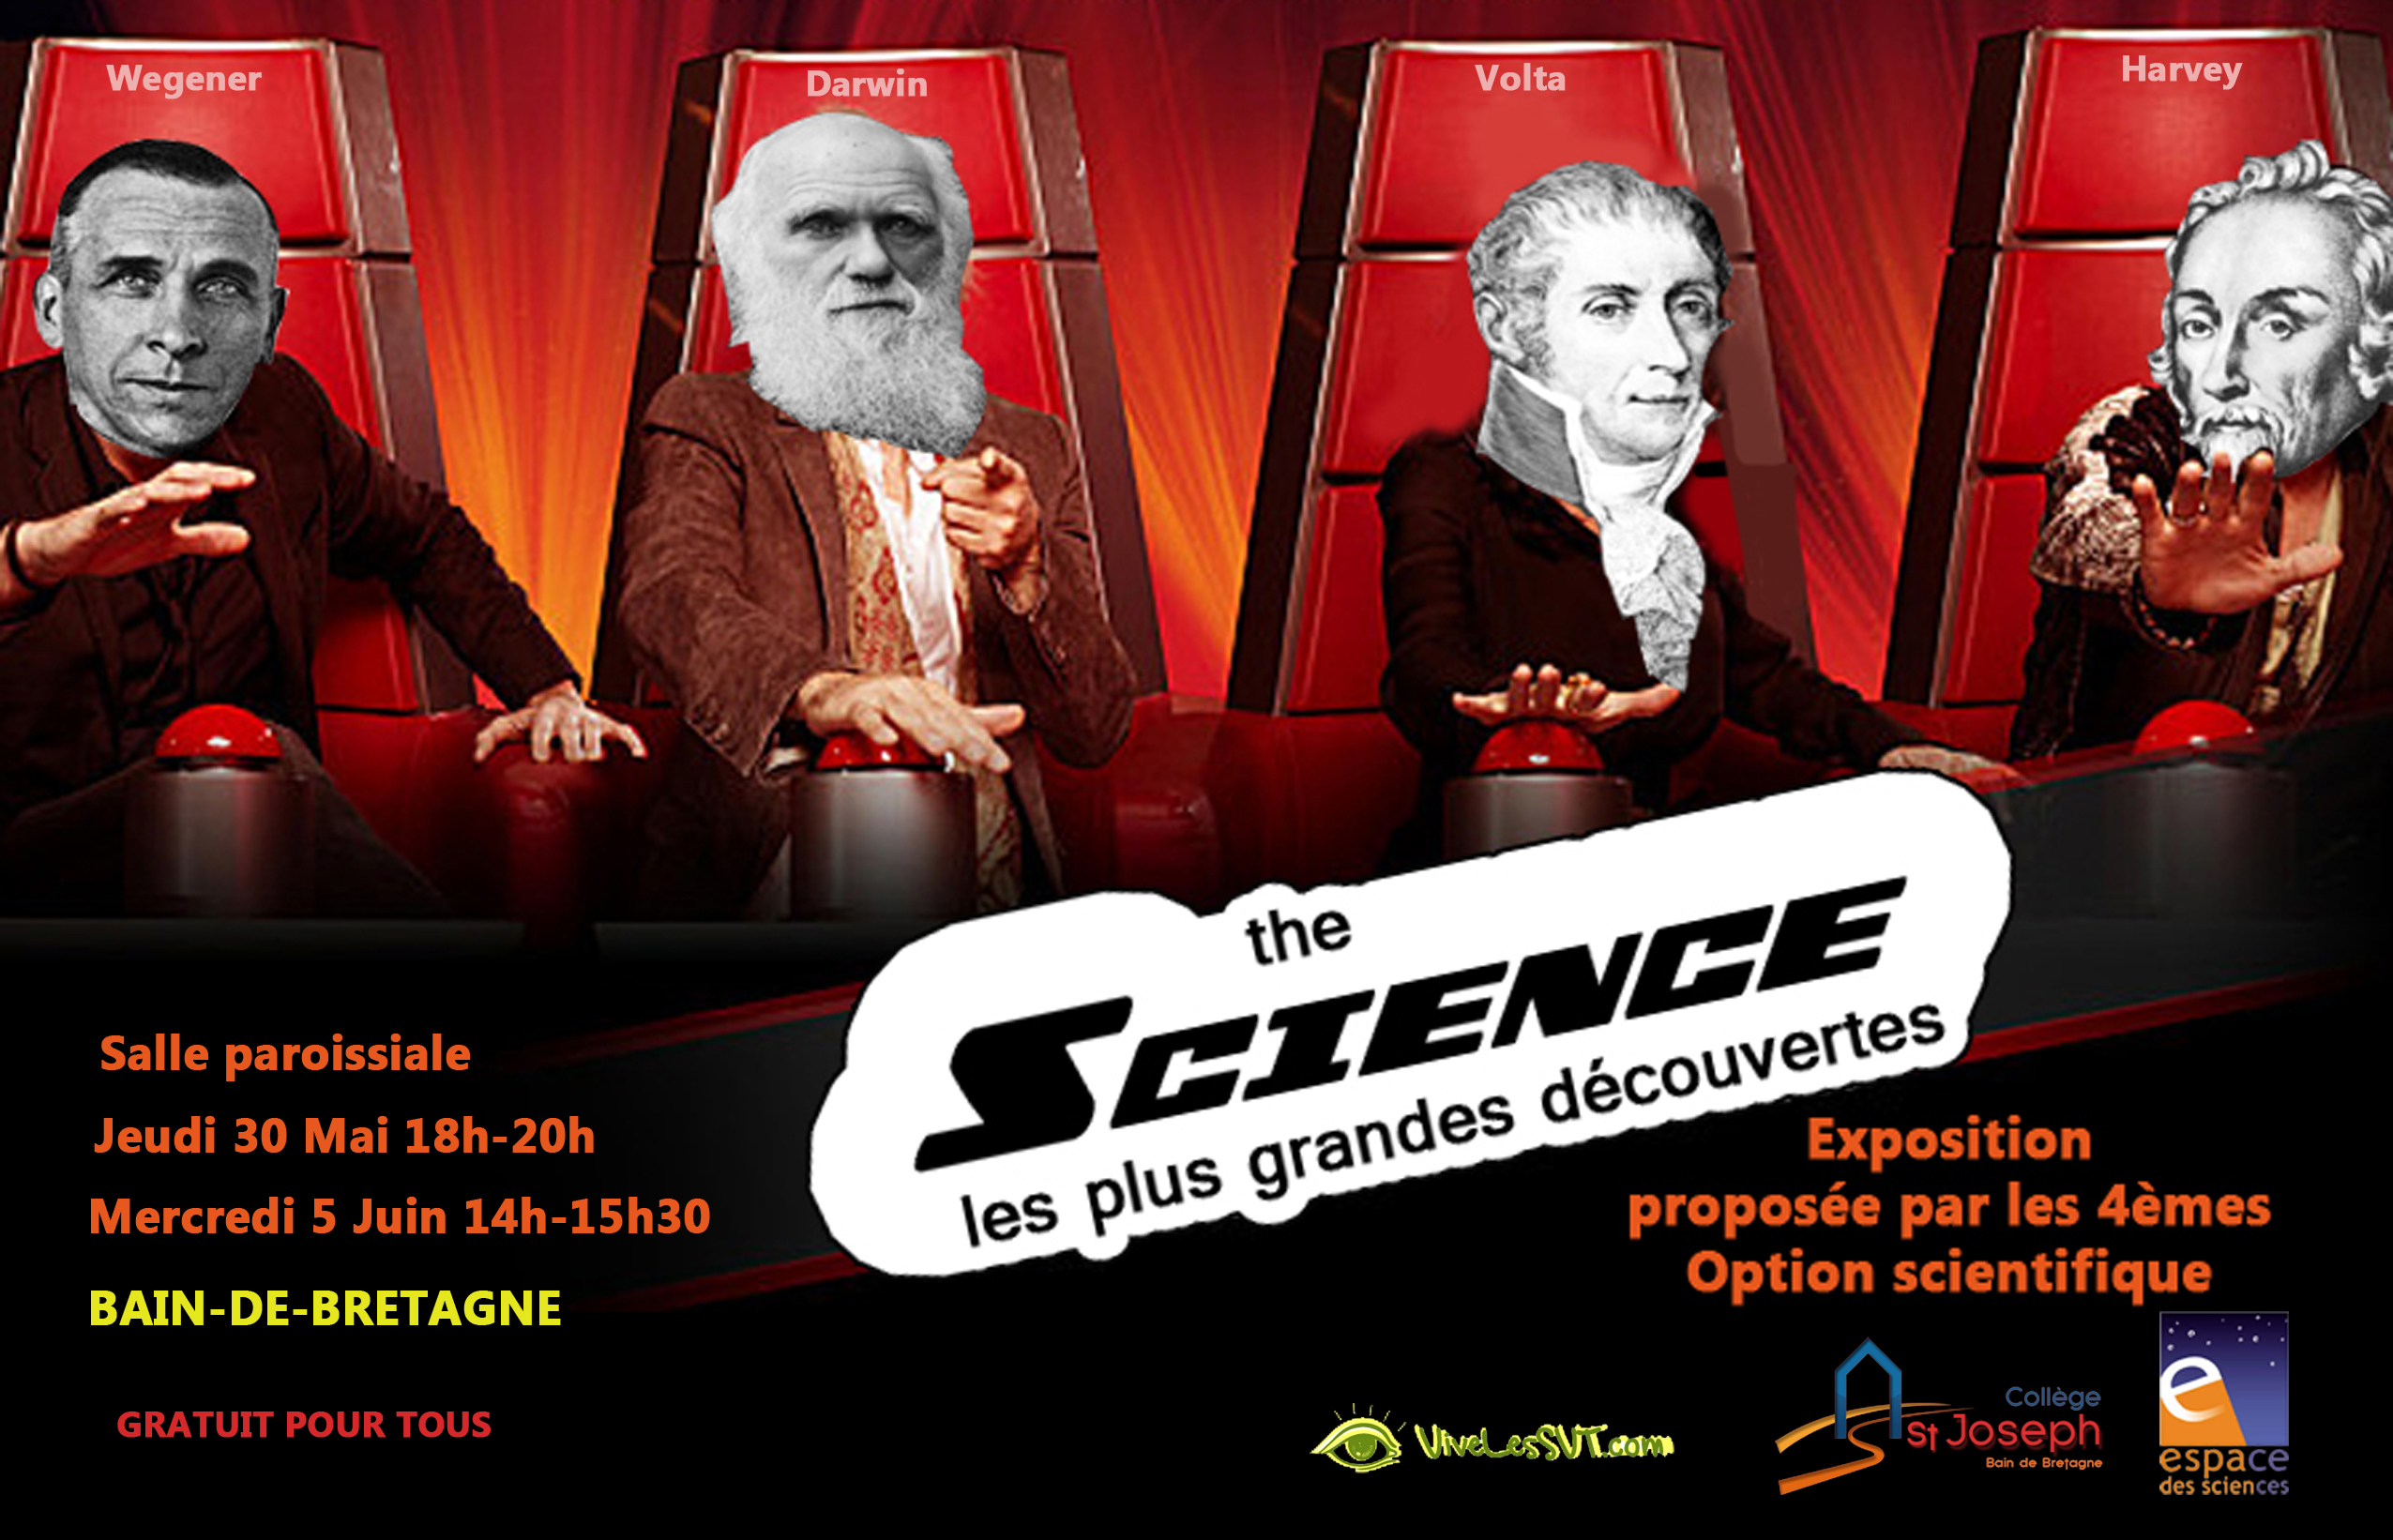 Exposition scientifique 2013